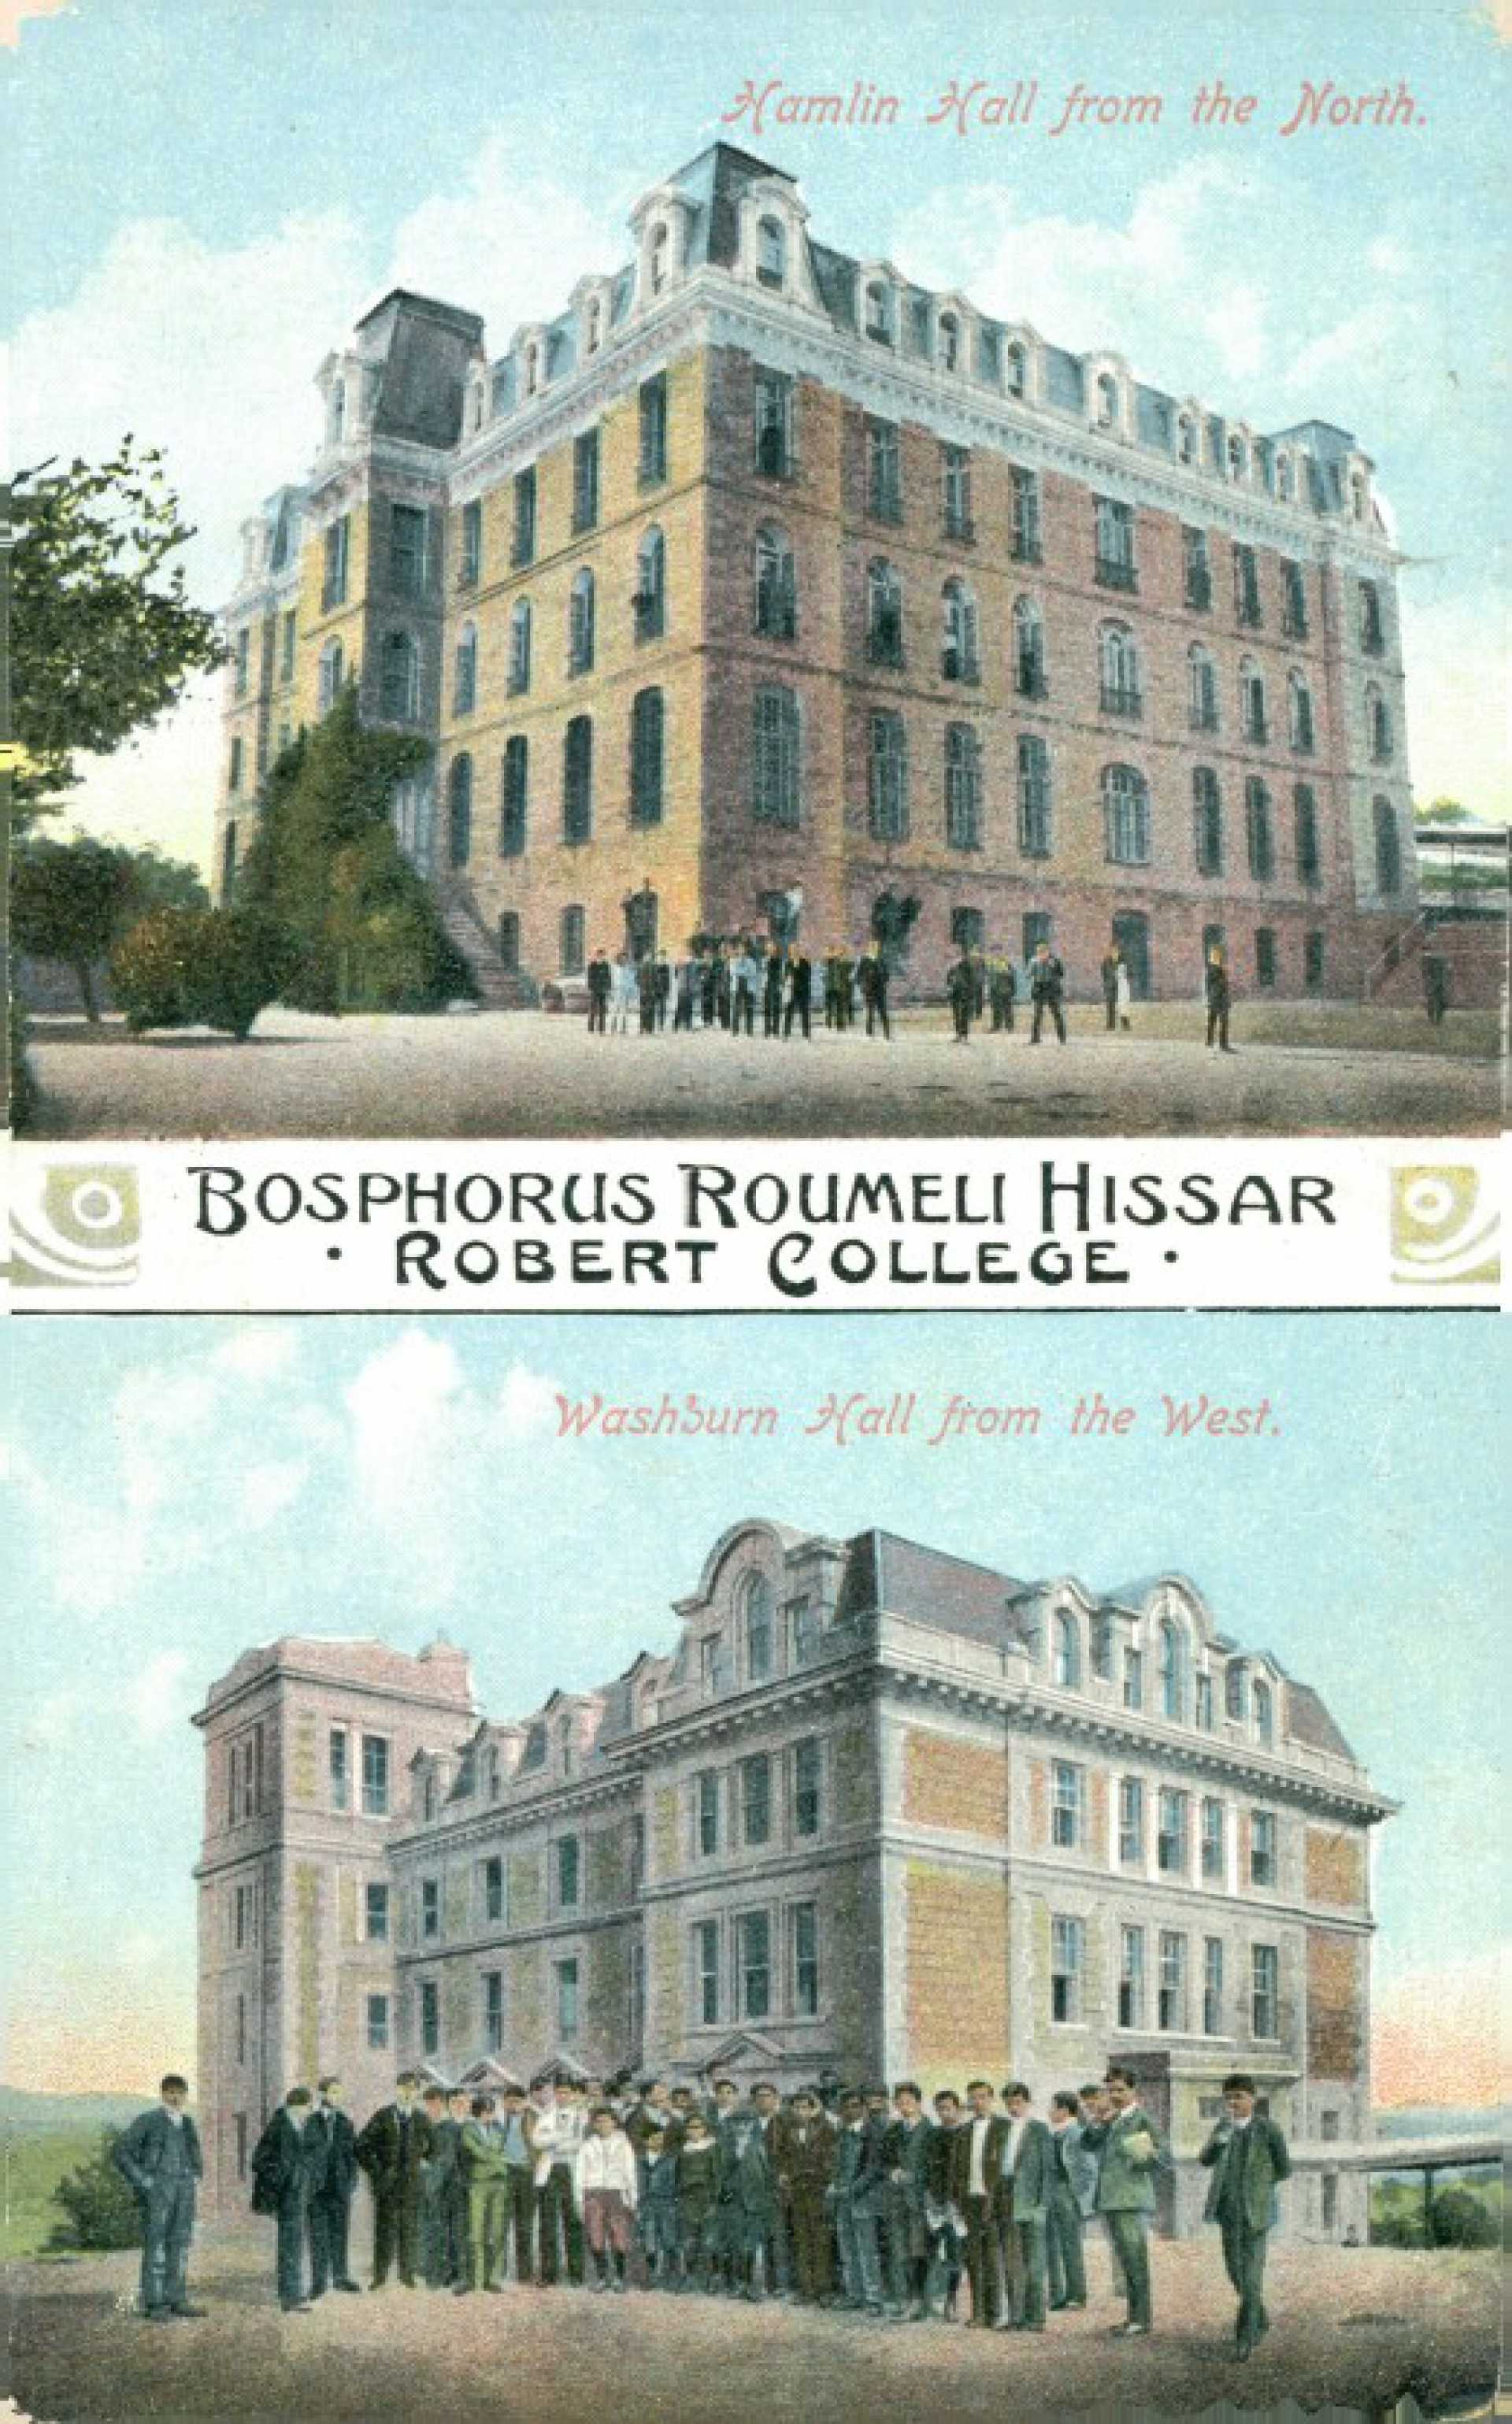 Bosphorus Roumeli Hissar Robert College